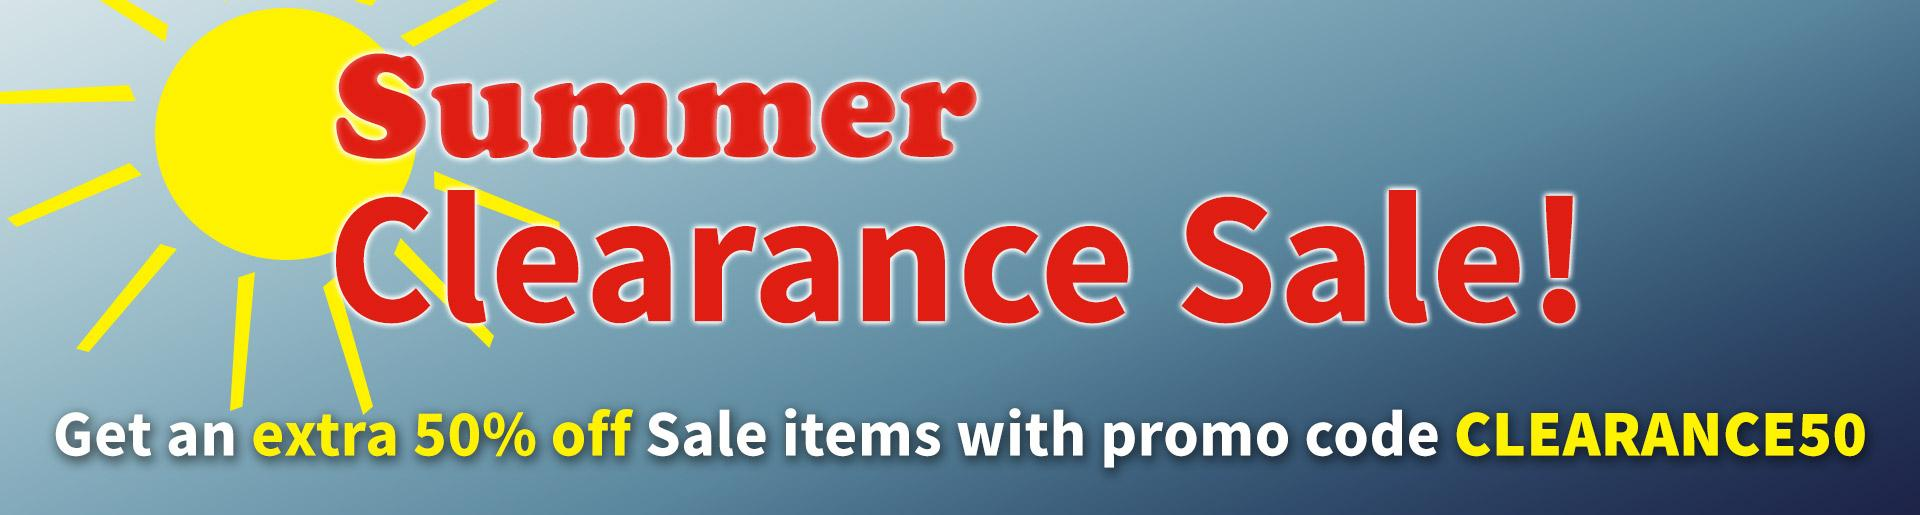 Get an extra 50 percent off Sale items with promo code CLEARANCE50. Valid on items in the Sale category June 22- July 5, 2020.